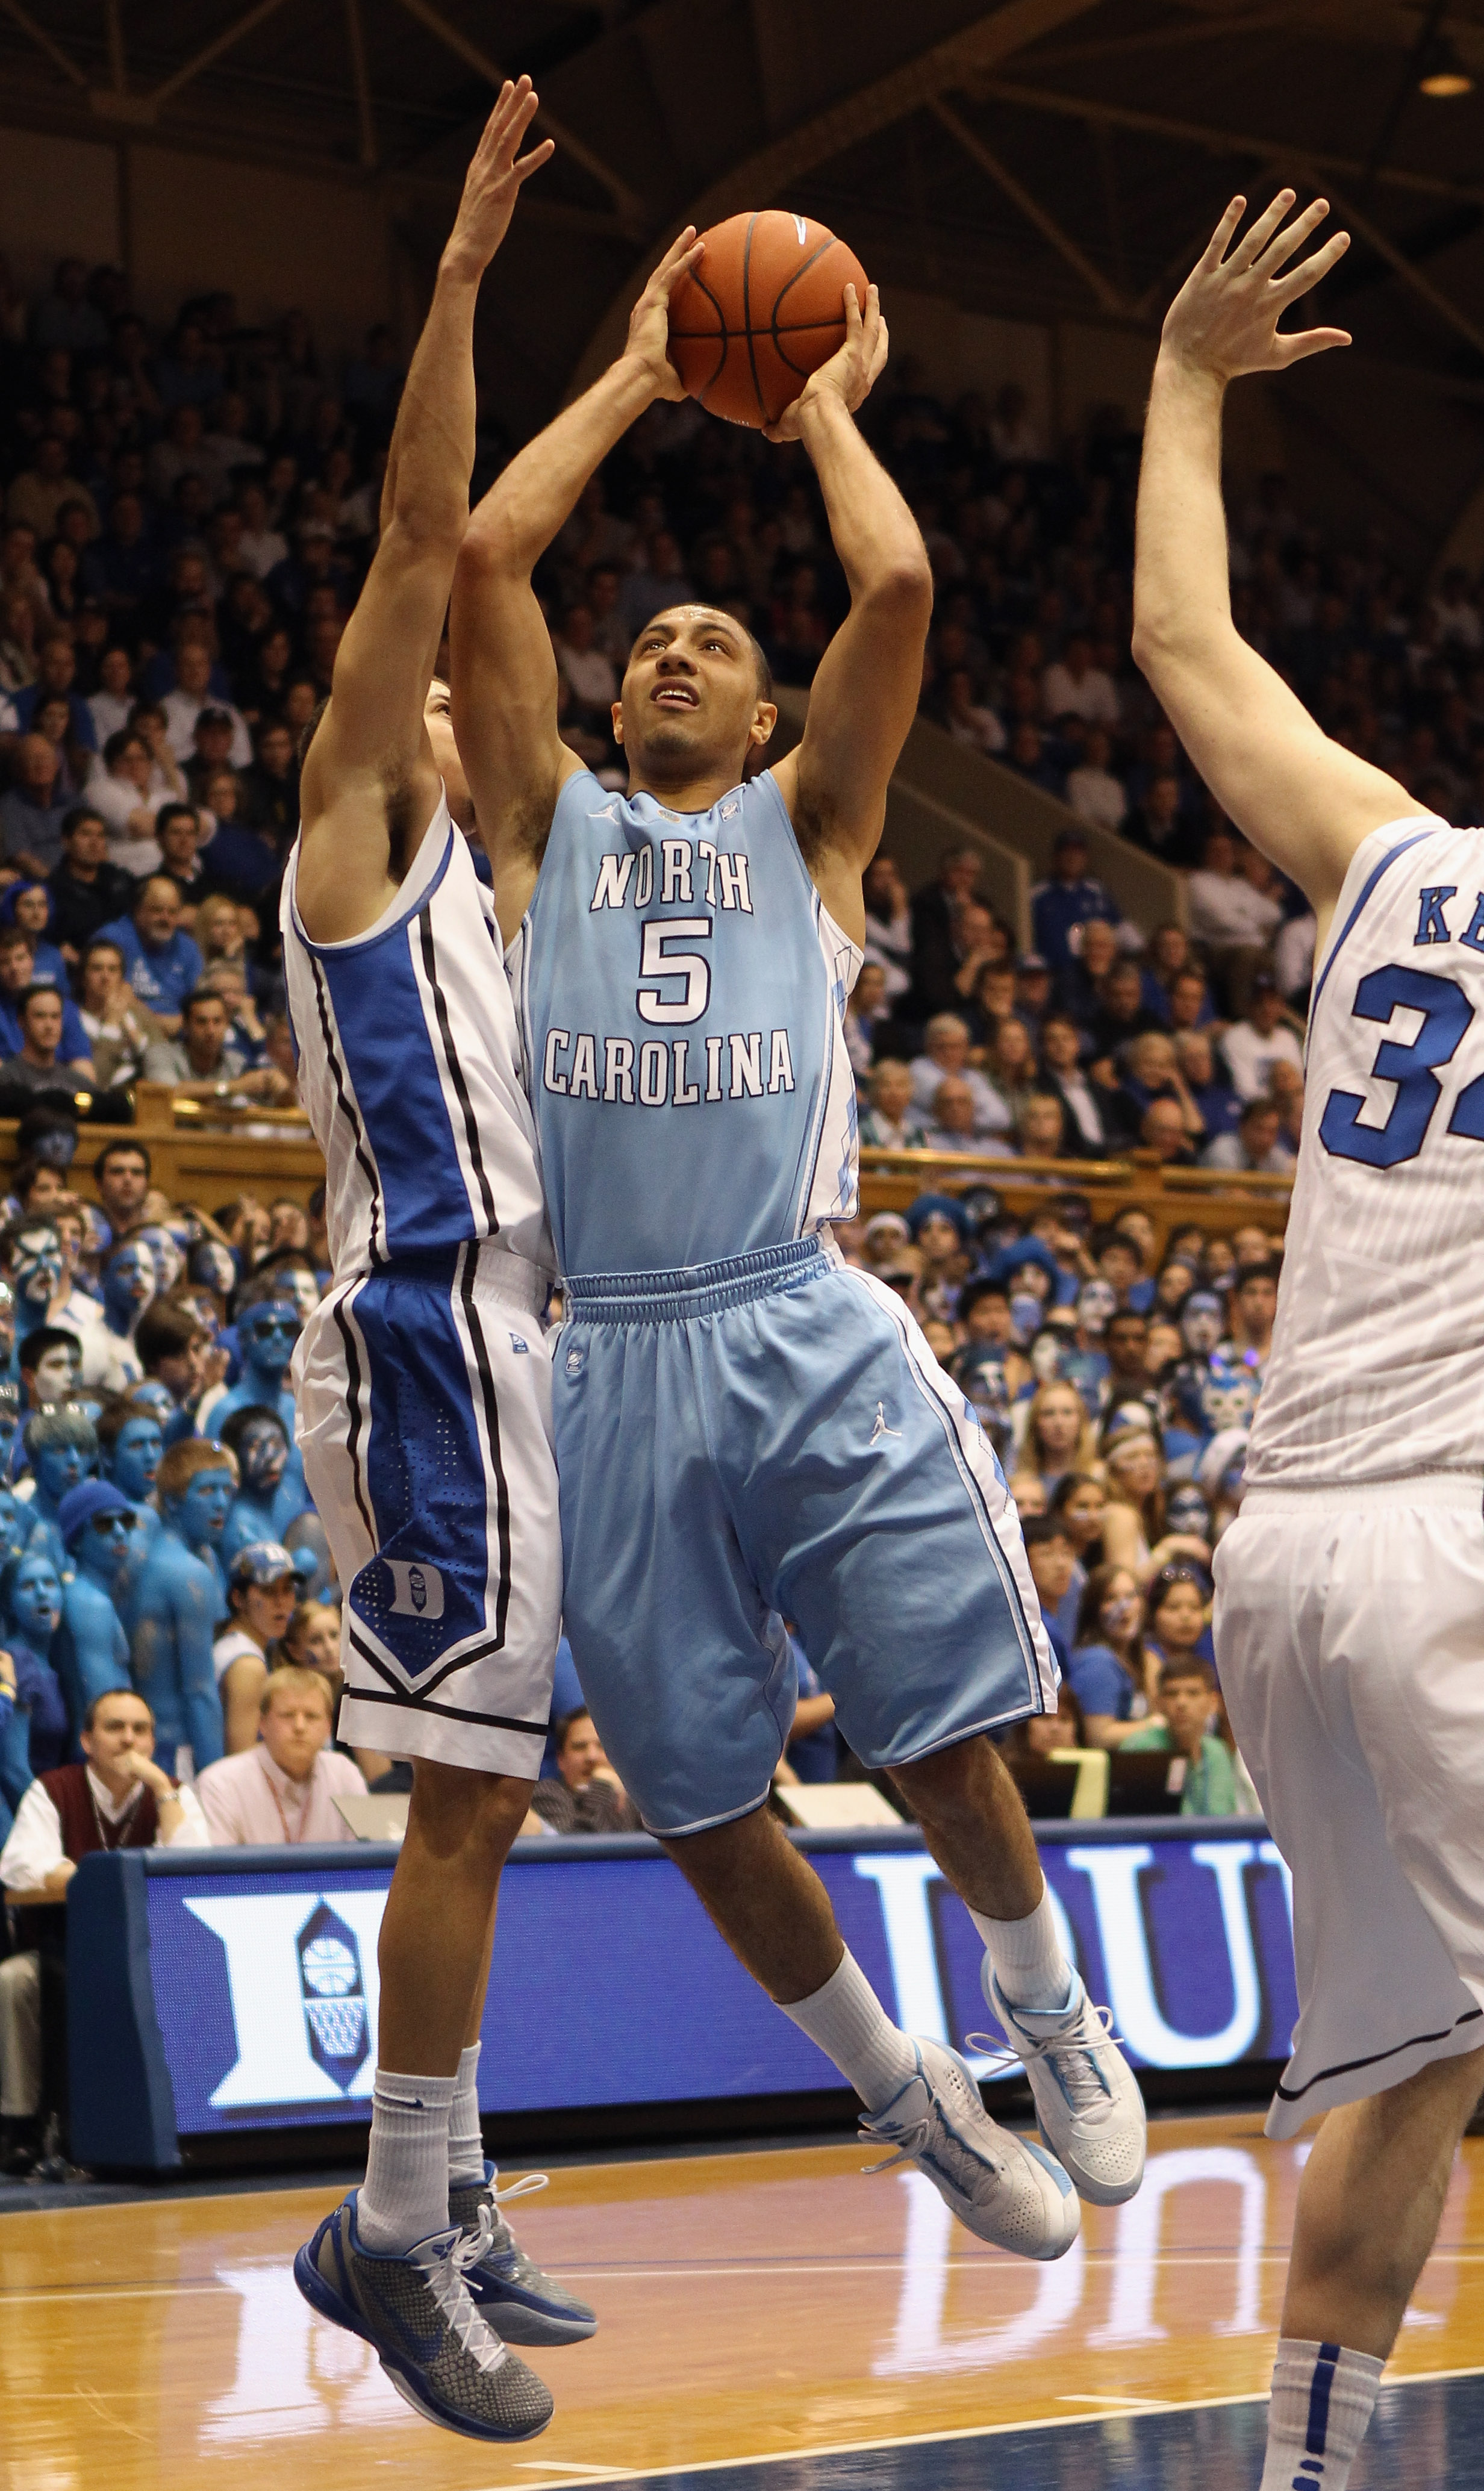 The Blue Devils will have to contain Kendall Marshall to have a shot at the regular-season crown.